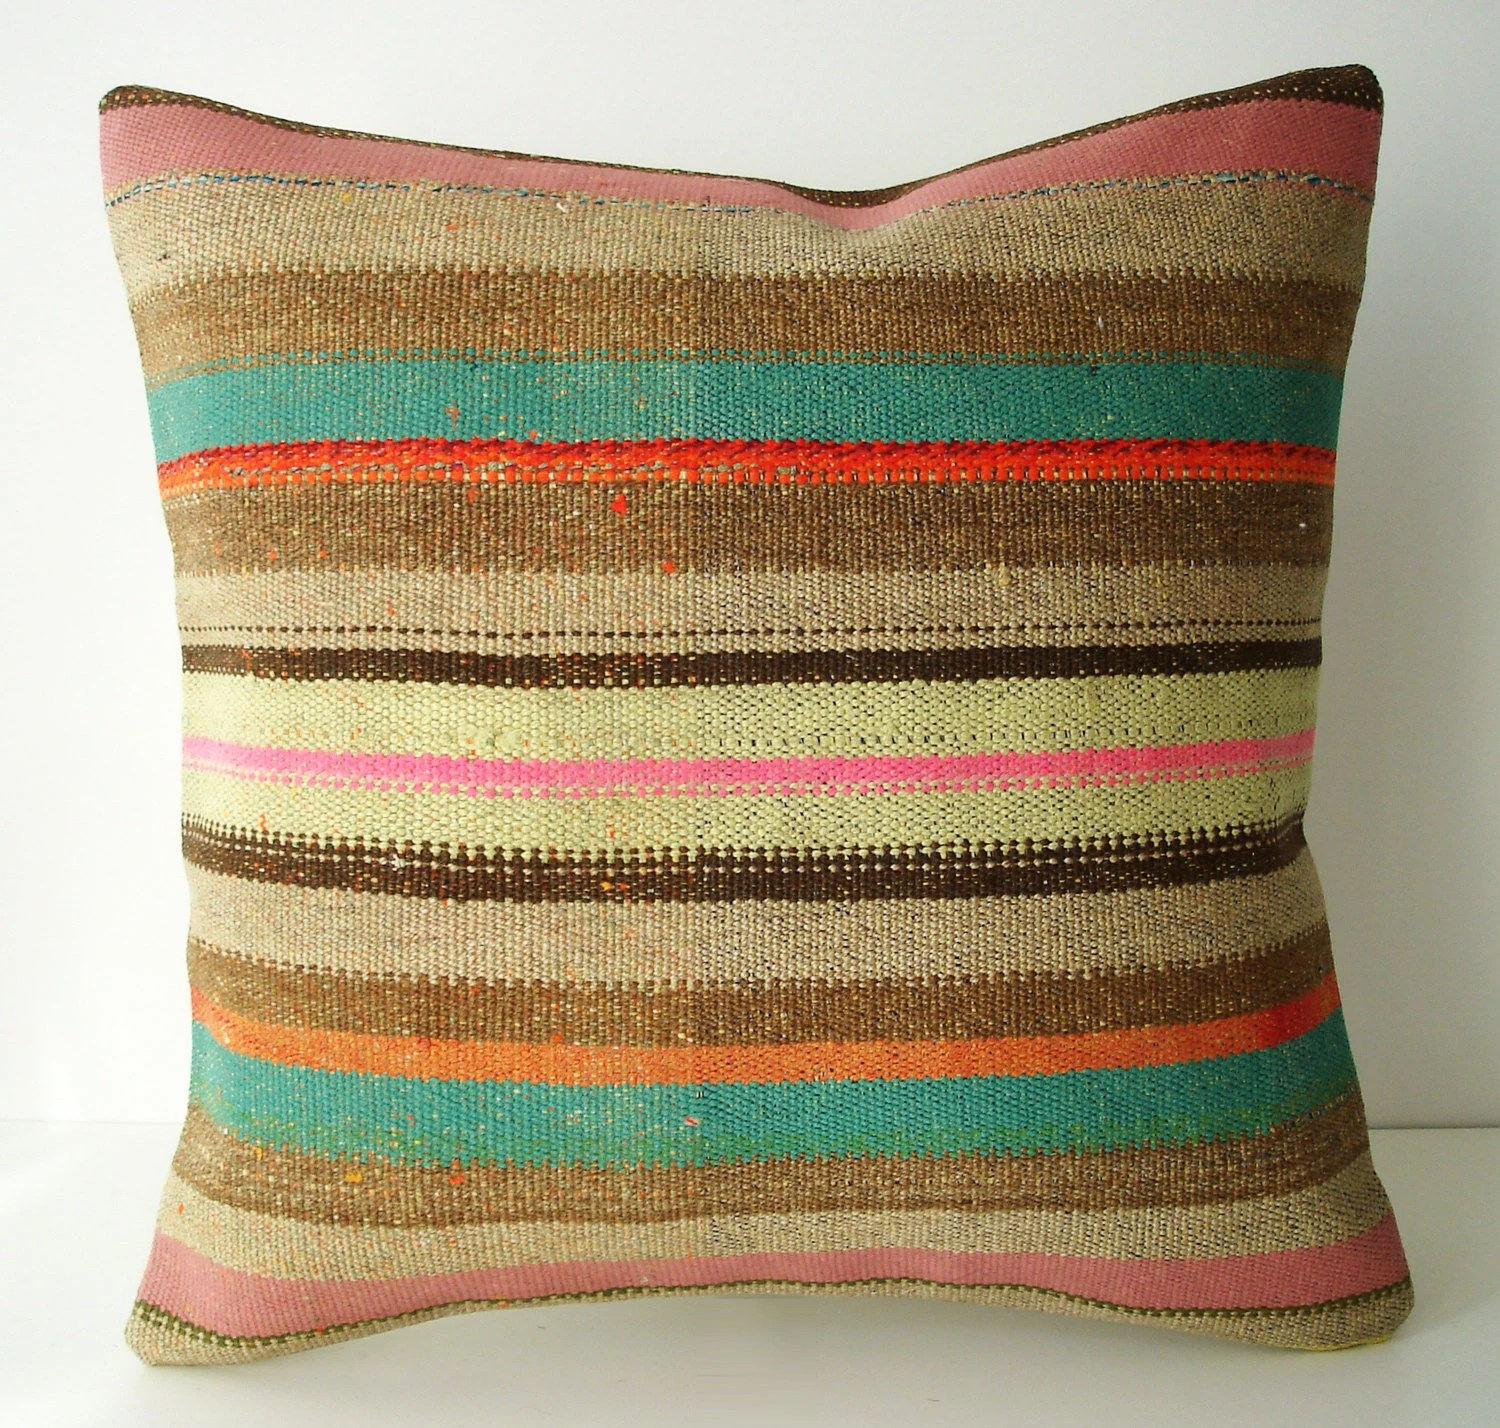 Sukan / Hand Woven - Turkish  Kilim Pillow Cover - 18x18